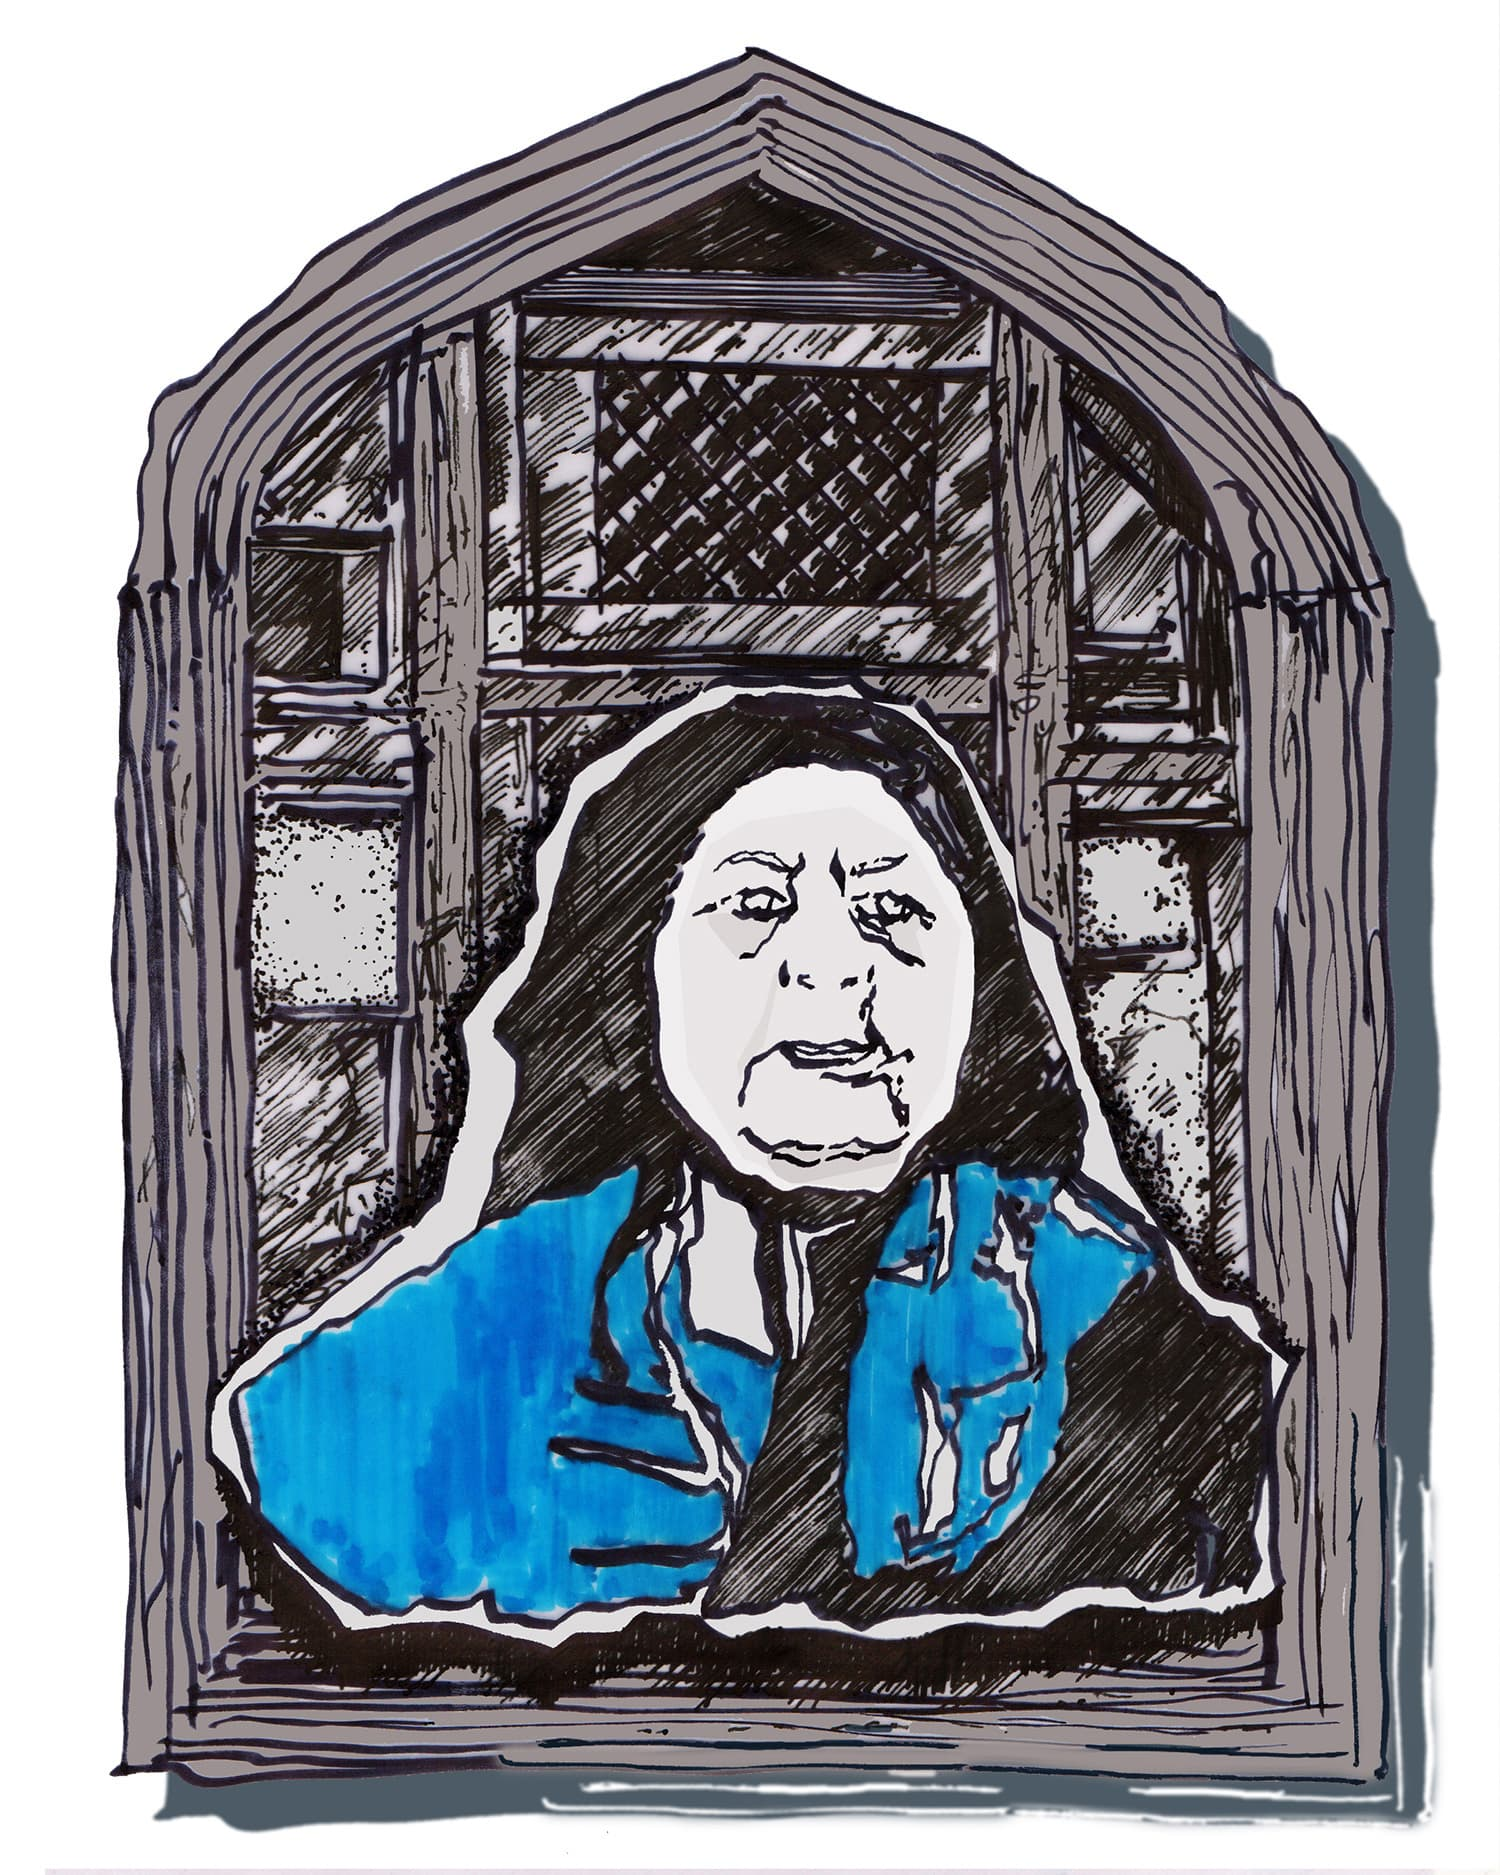 Zoya Khan, 'Ateeqa Bano', Chinese Ink and Alcohol Marker on Paper. Digitised, 8 in x 10 in.